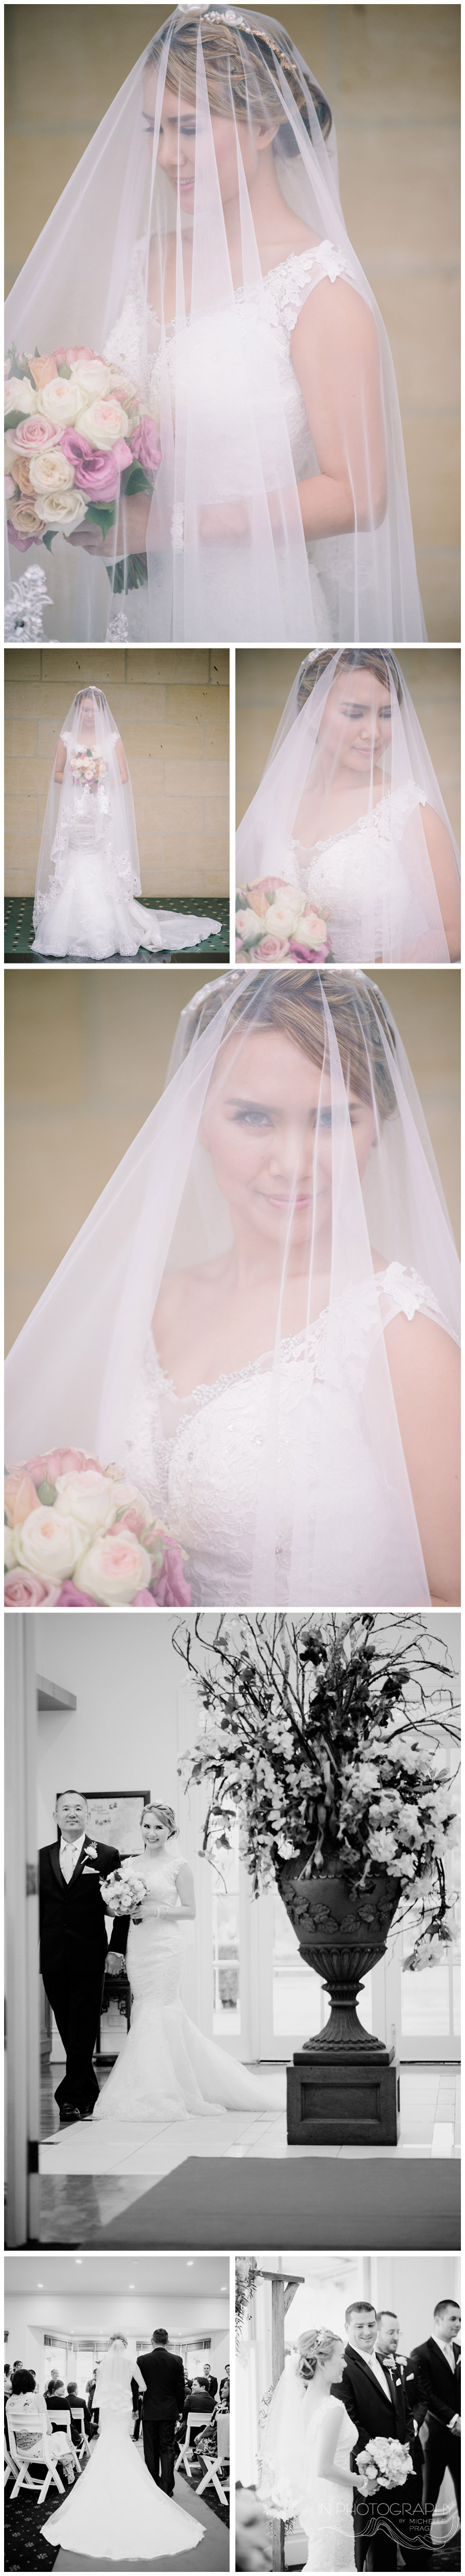 wedding veil photographed by Michelle Pragt